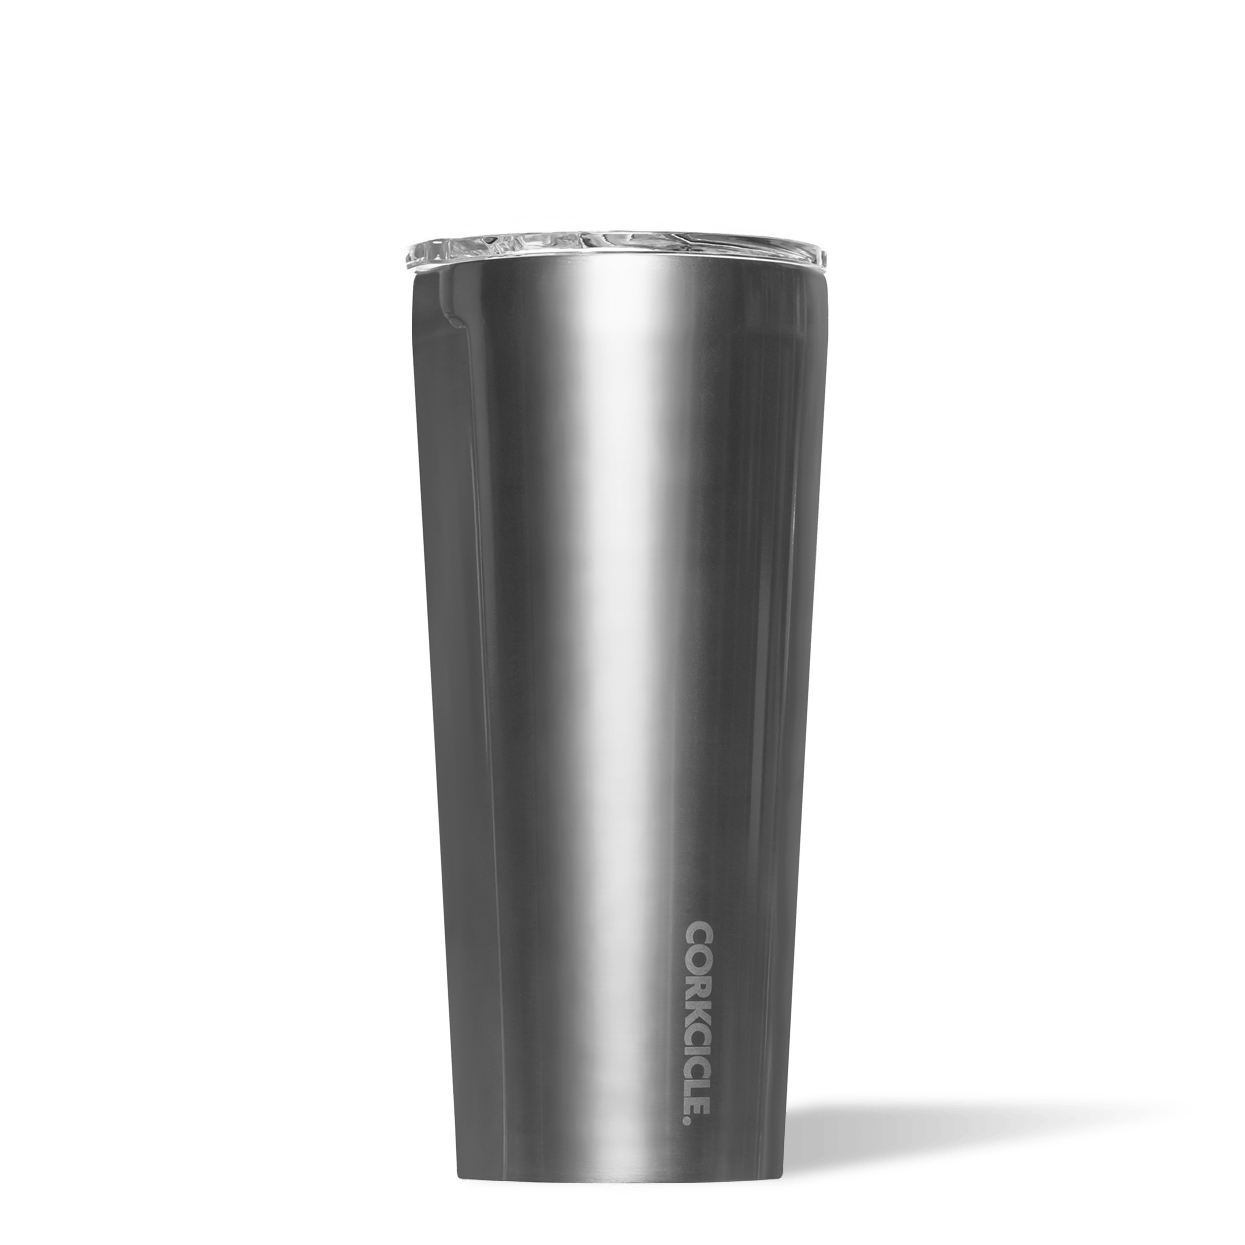 Corkcicle 24oz Gunmetal Metallic Tumbler Side View.